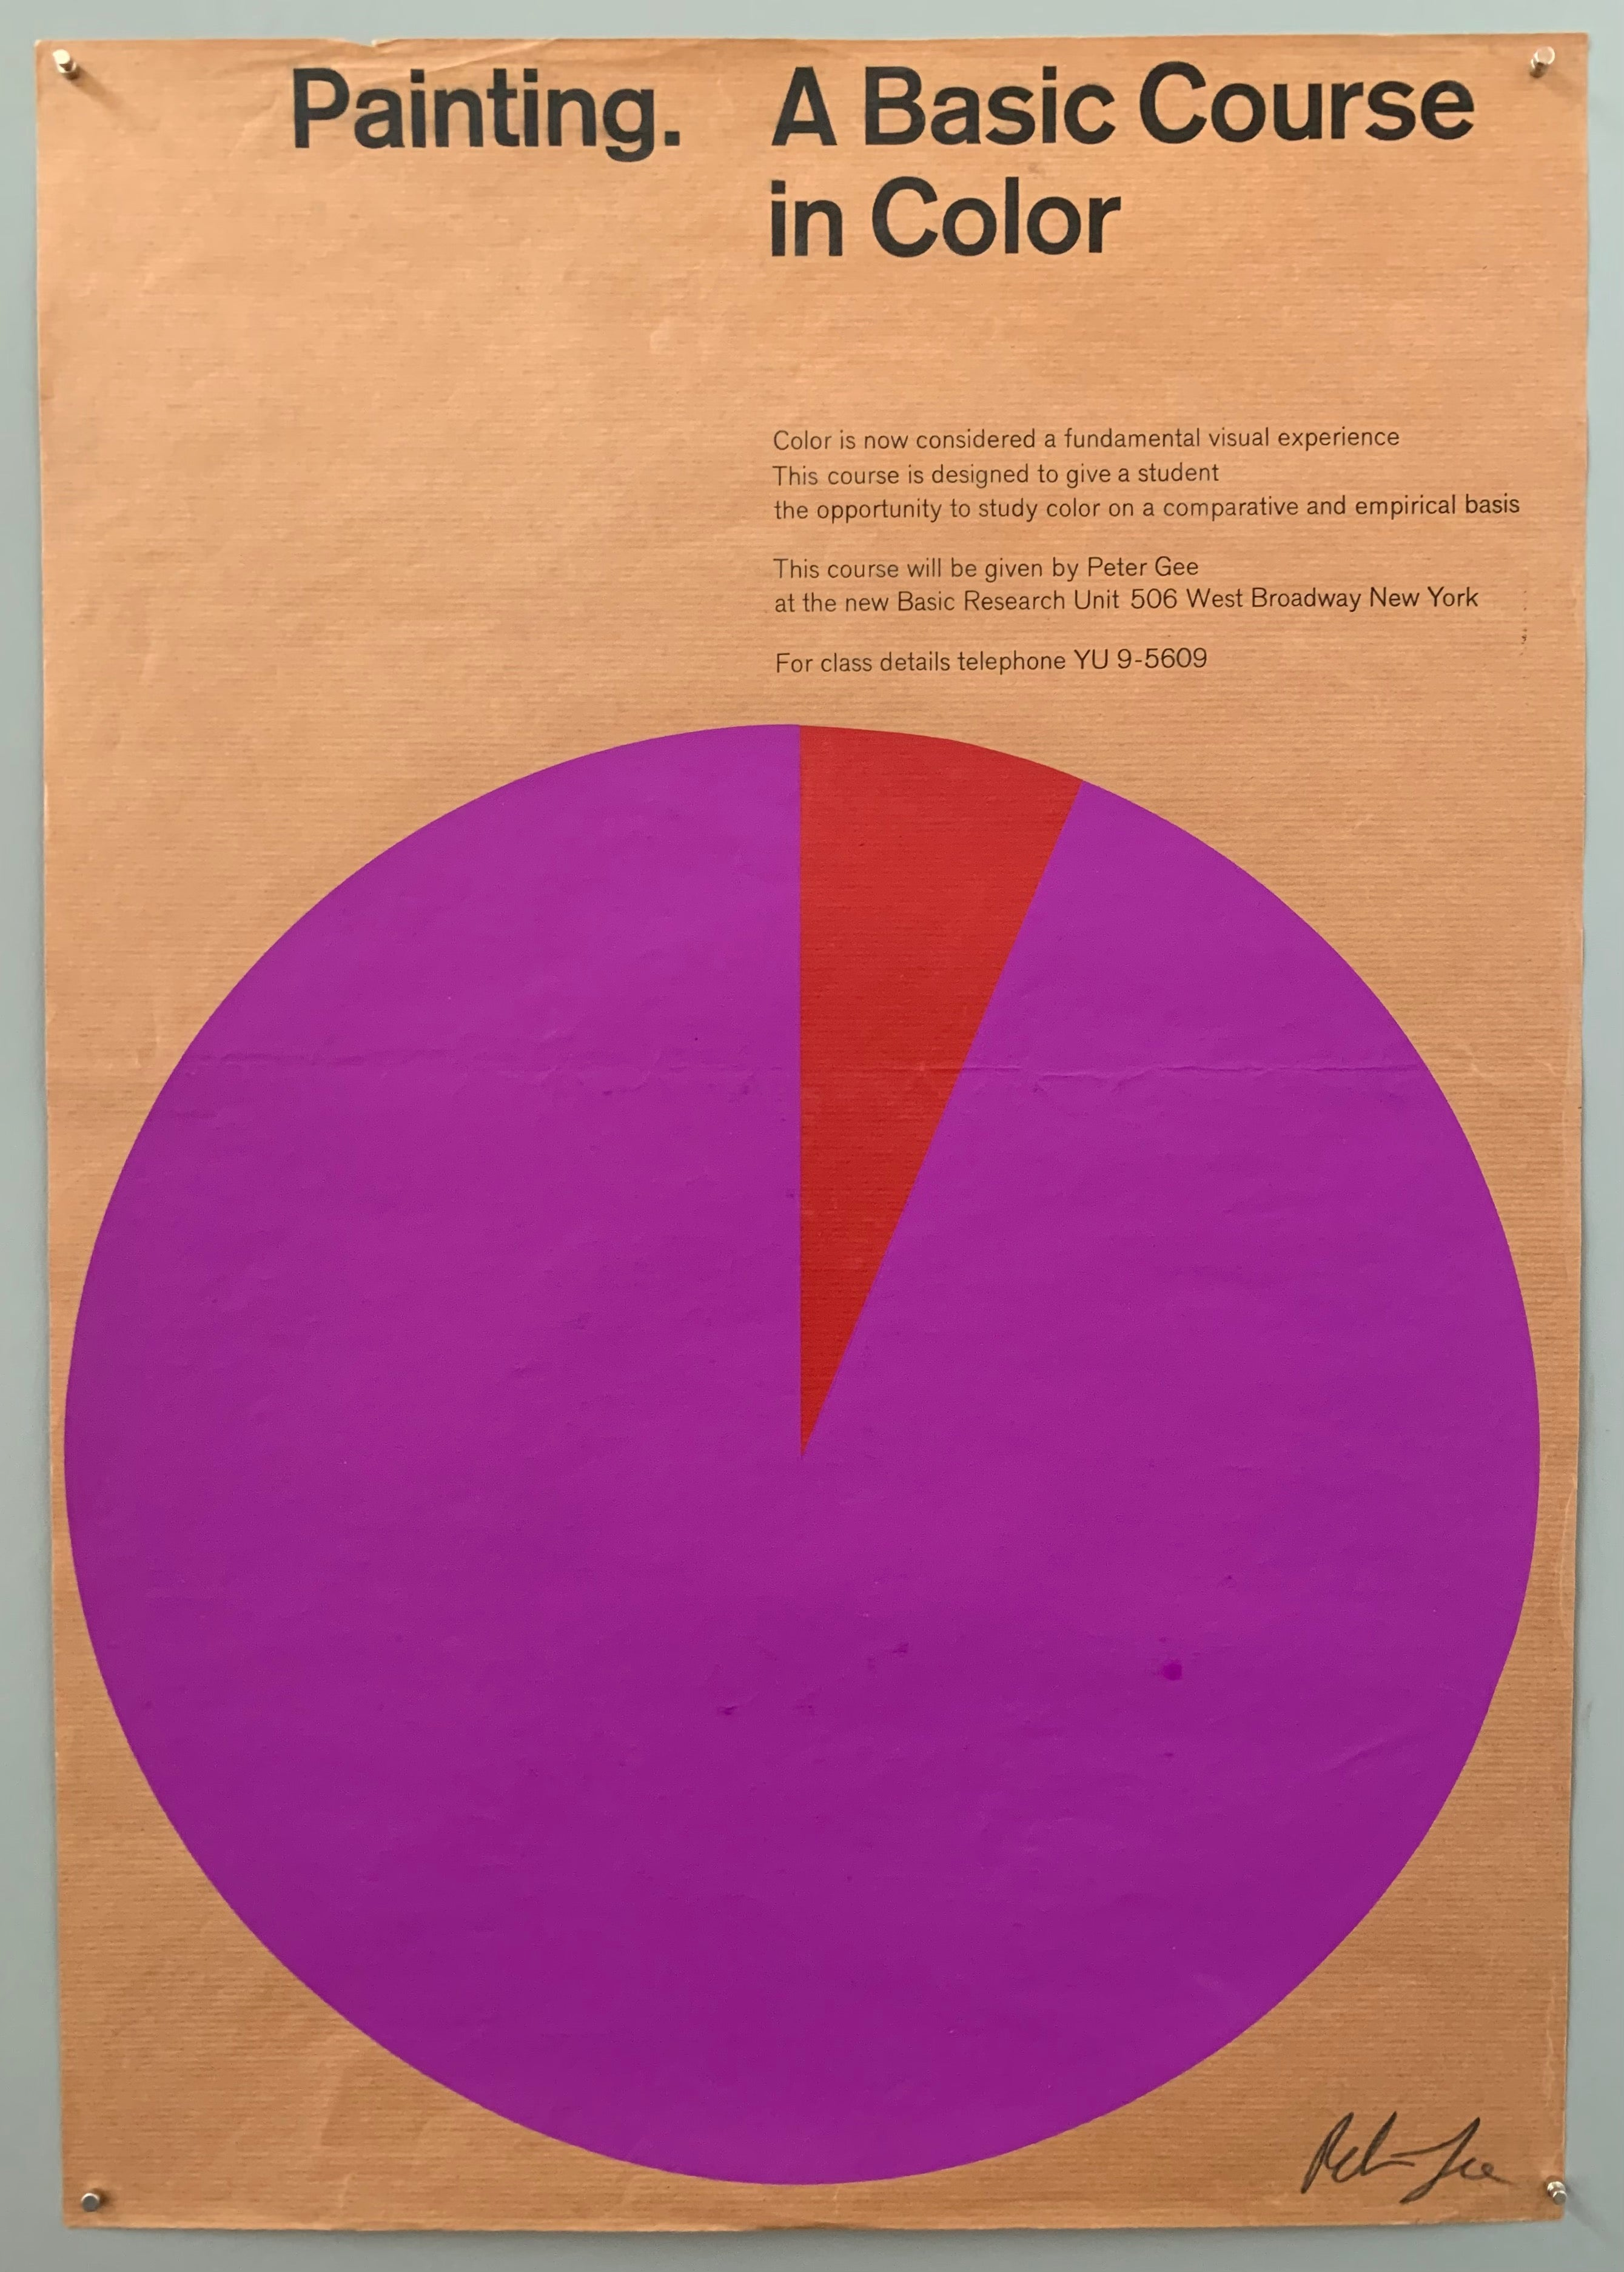 A large circle has a piece cut out of it in a different color. The font is at the top in black. The colors used are fuschia and red. It is on tan texture paper.